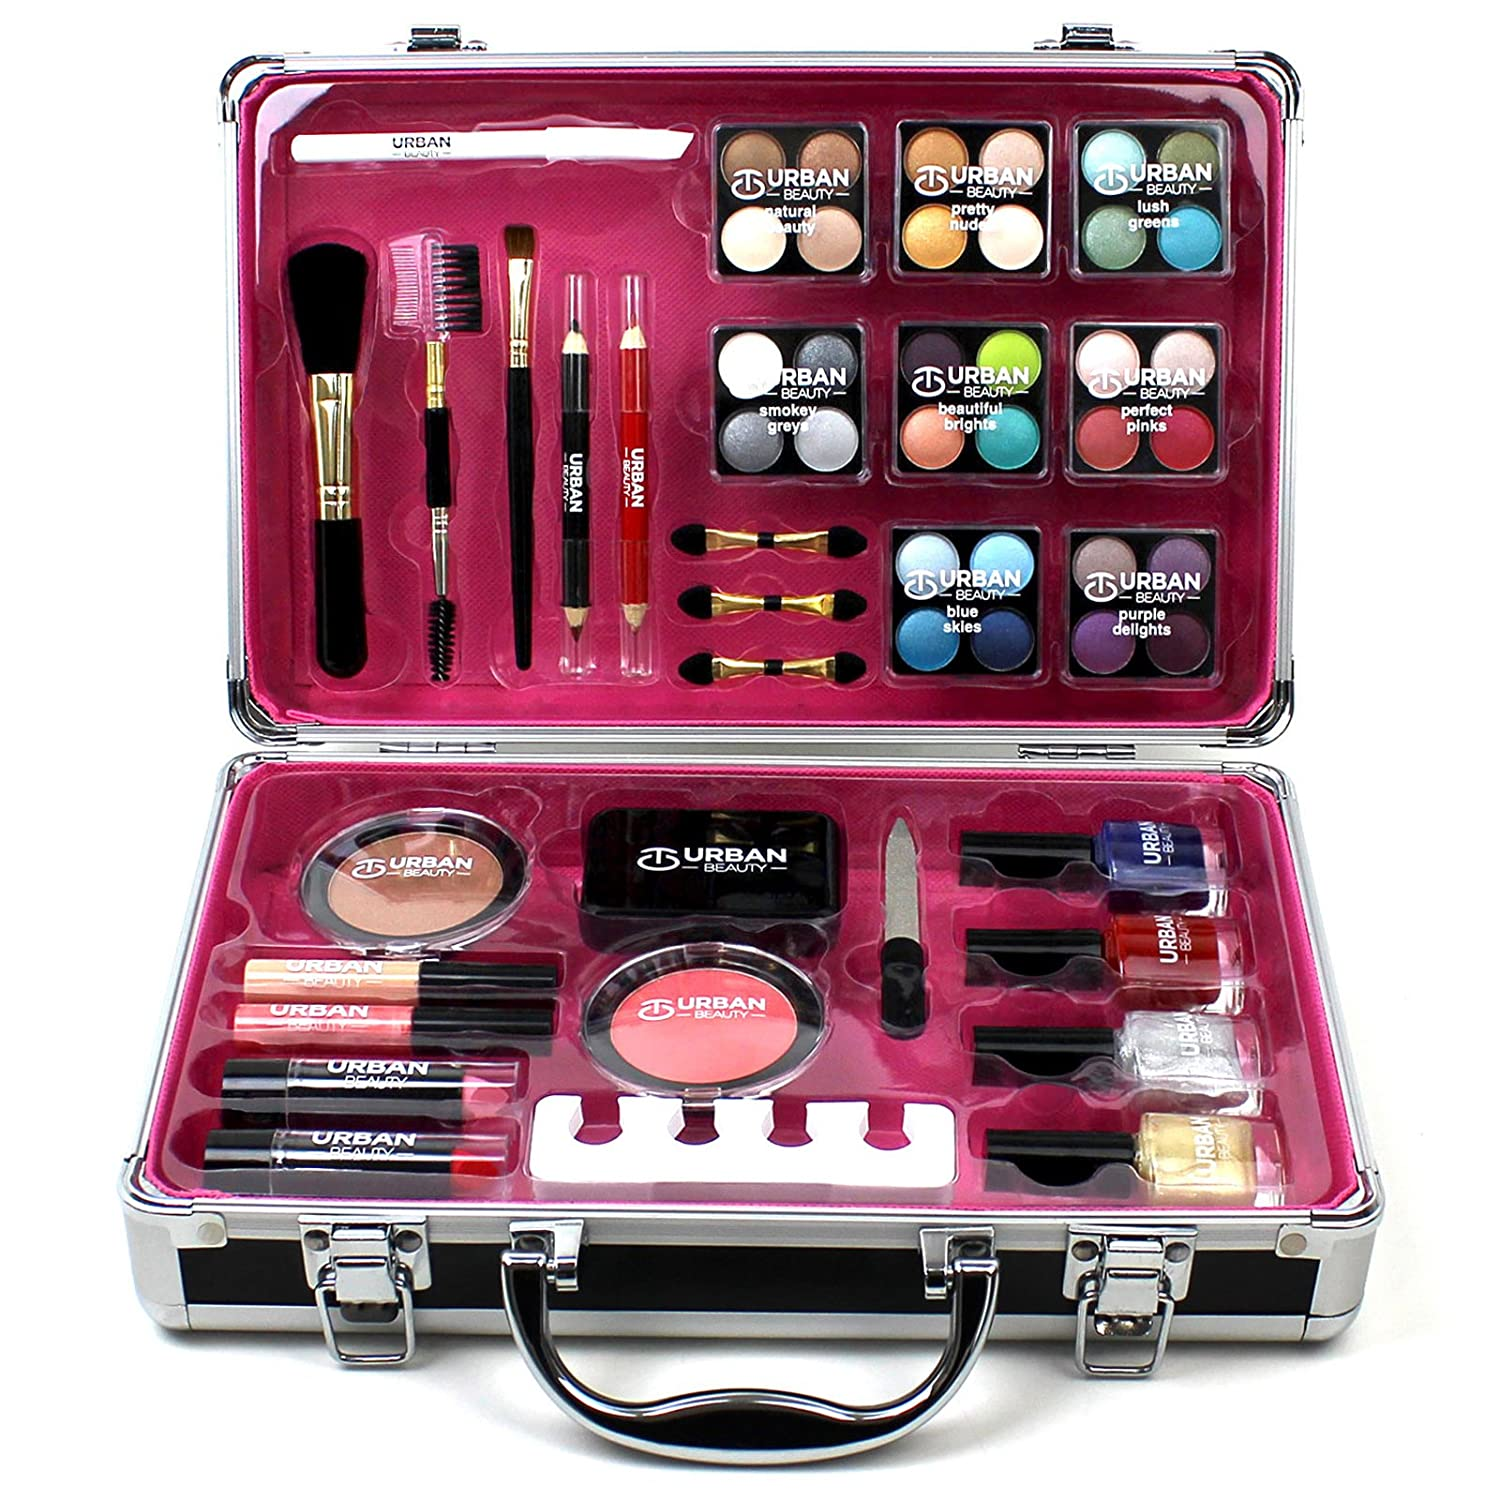 Professional Vanity Case Cosmetic Make Up Urban Beauty Box Travel Carry  Gift 57 Piece Storage Organizer   Eyes Lips Face Nail: Amazon.co.uk: Beauty